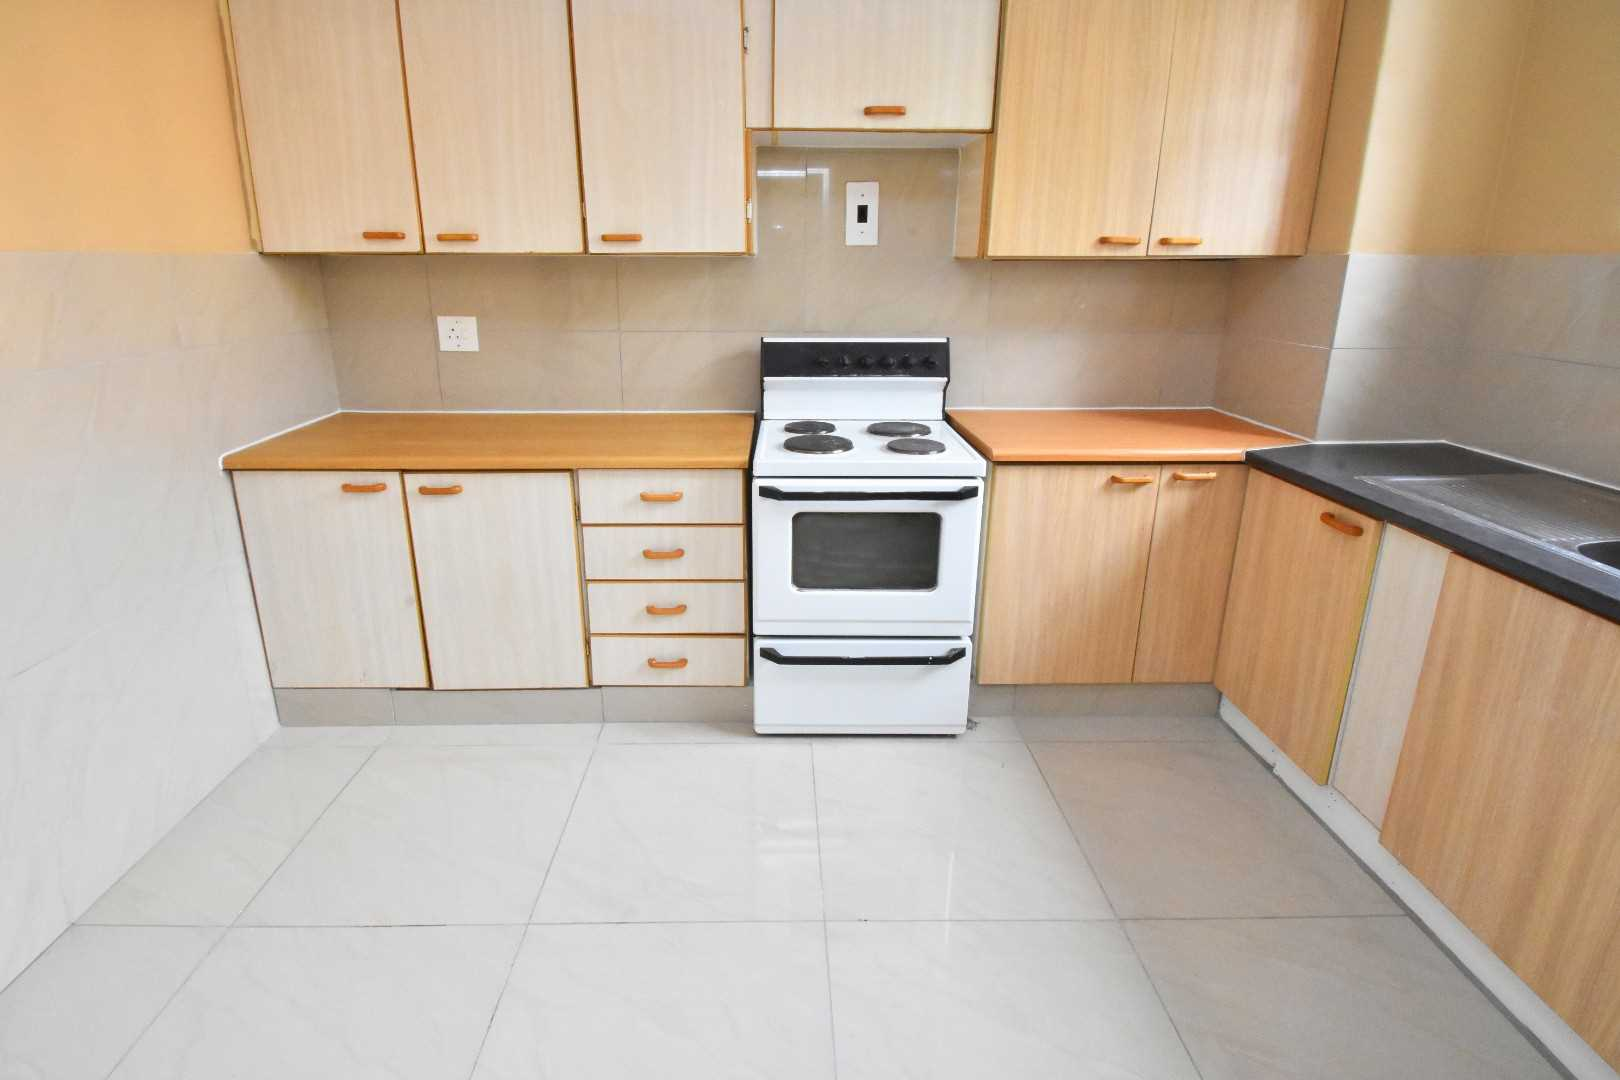 Kitchen are functional, spacious and offers ample cupboard space